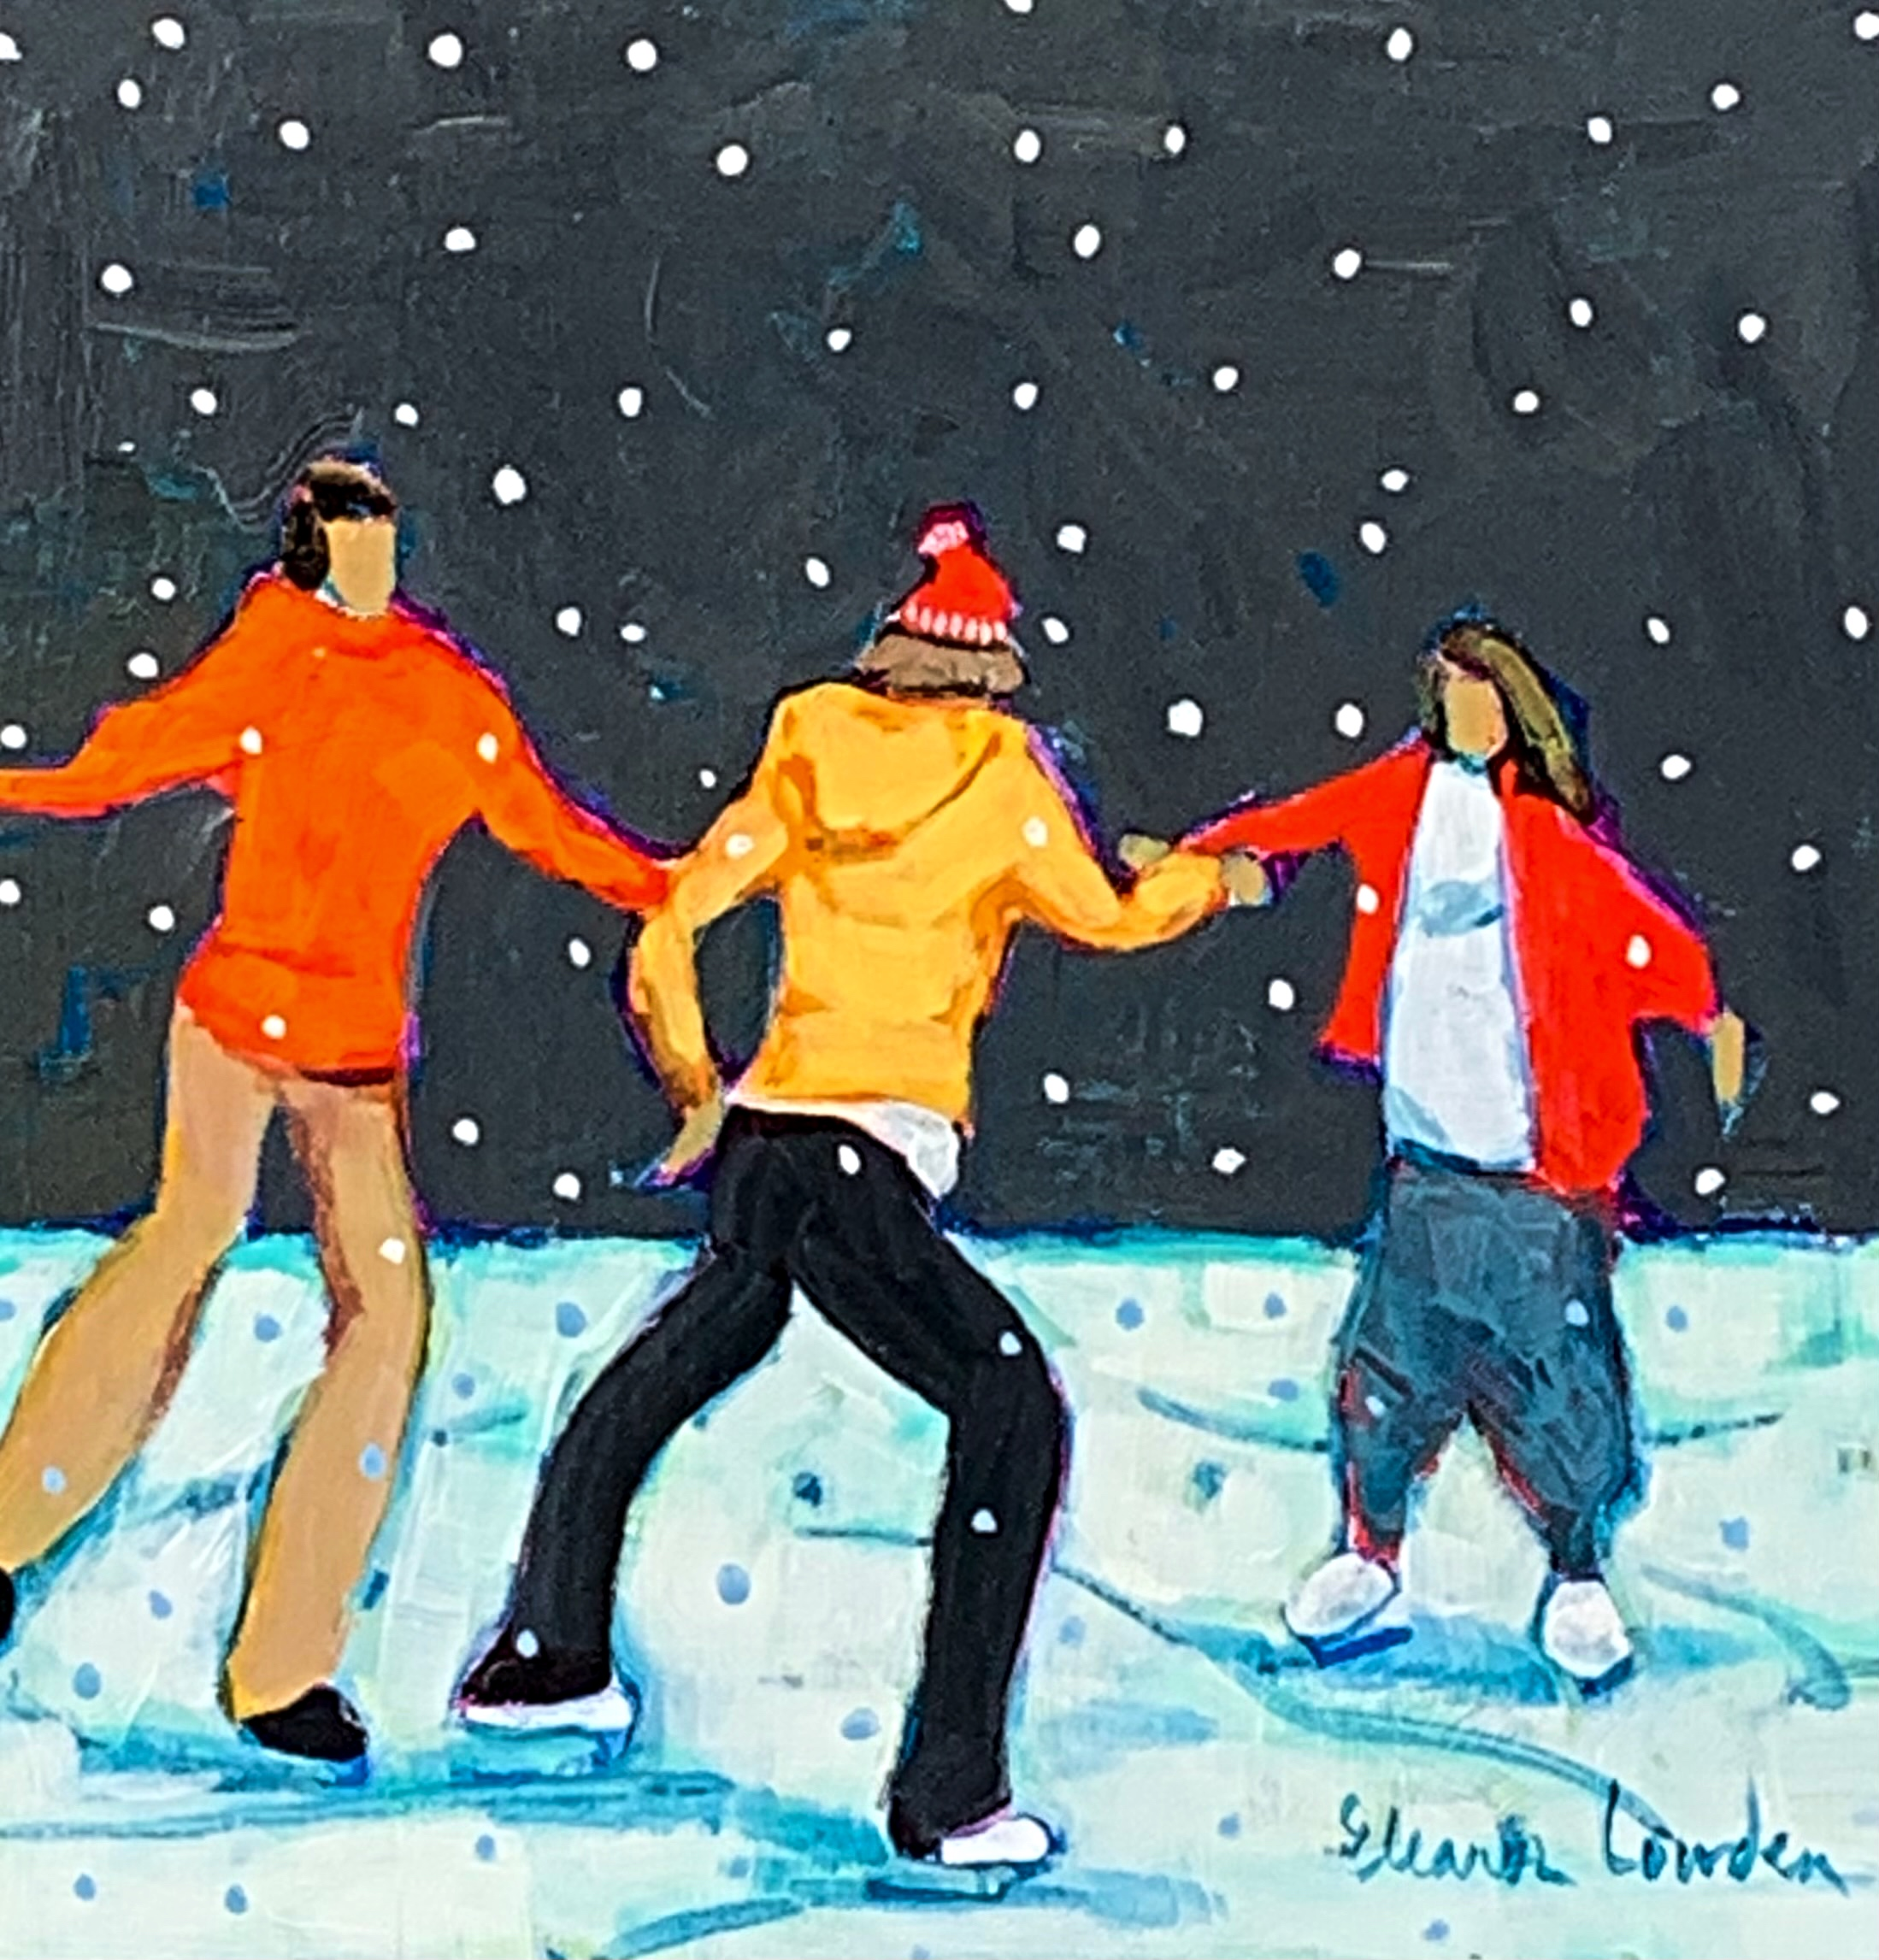 Snowflakes and Skates 2, nighttime skating painting by Eleanor Lowden | Effusion Art Gallery + Cast Glass Studio, Invermere BC